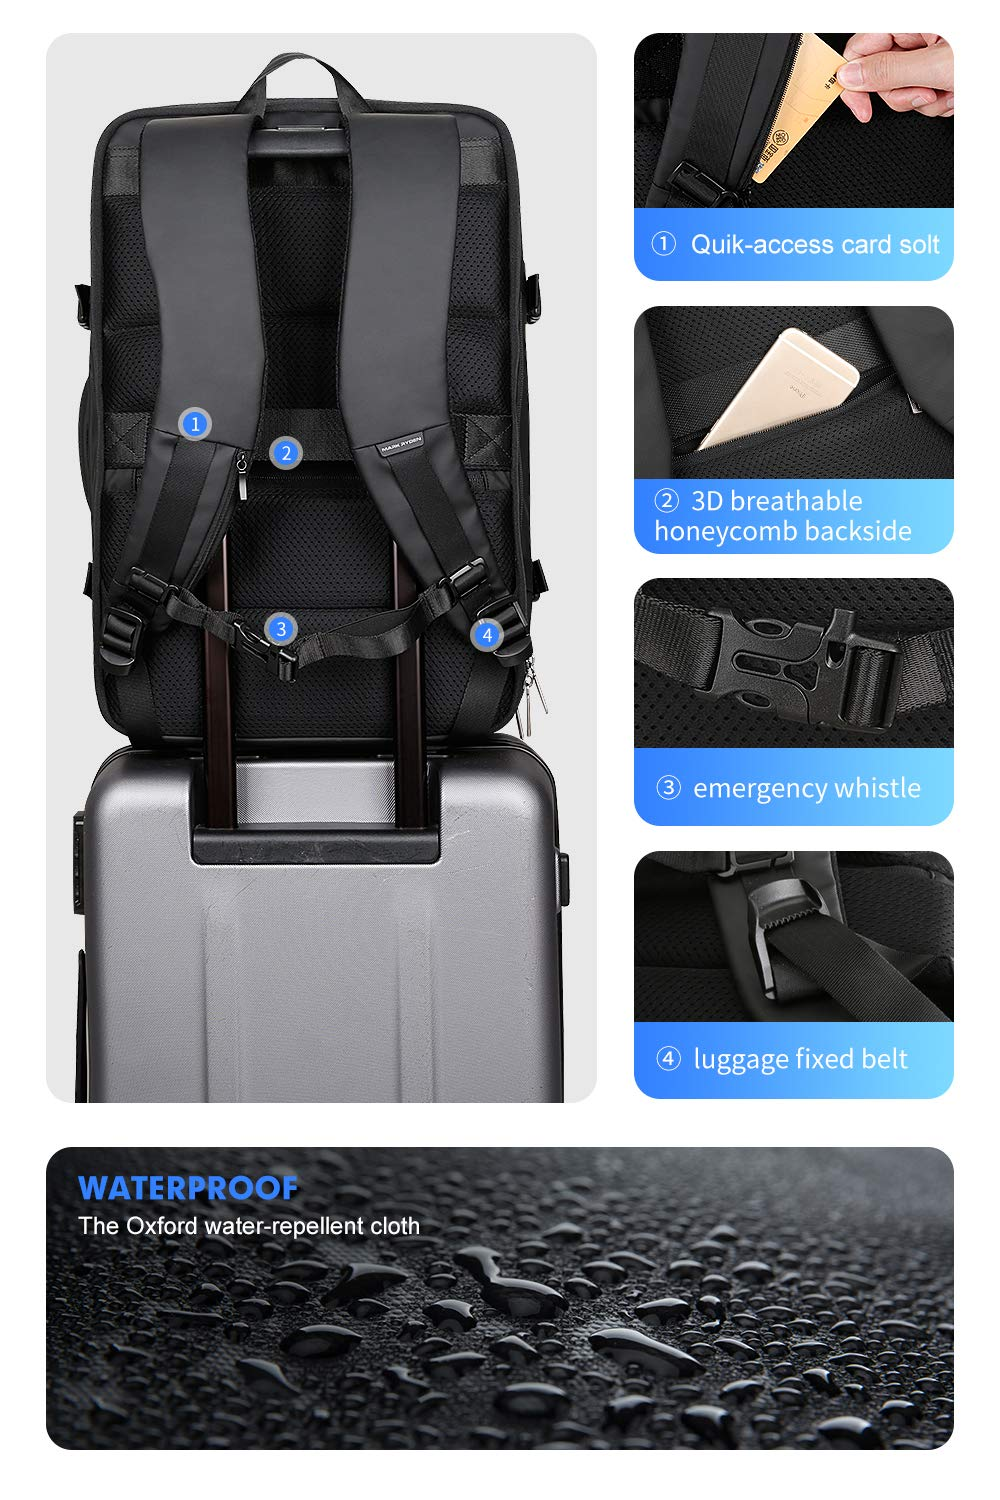 MARK RYDEN 23L/40L Business Carry-on Travel Backpack, Lightweight Flight-Approved Expandable Weekender Bag with USB Charging Port fit 17.3 Laptop by MARK RYDEN (Image #5)